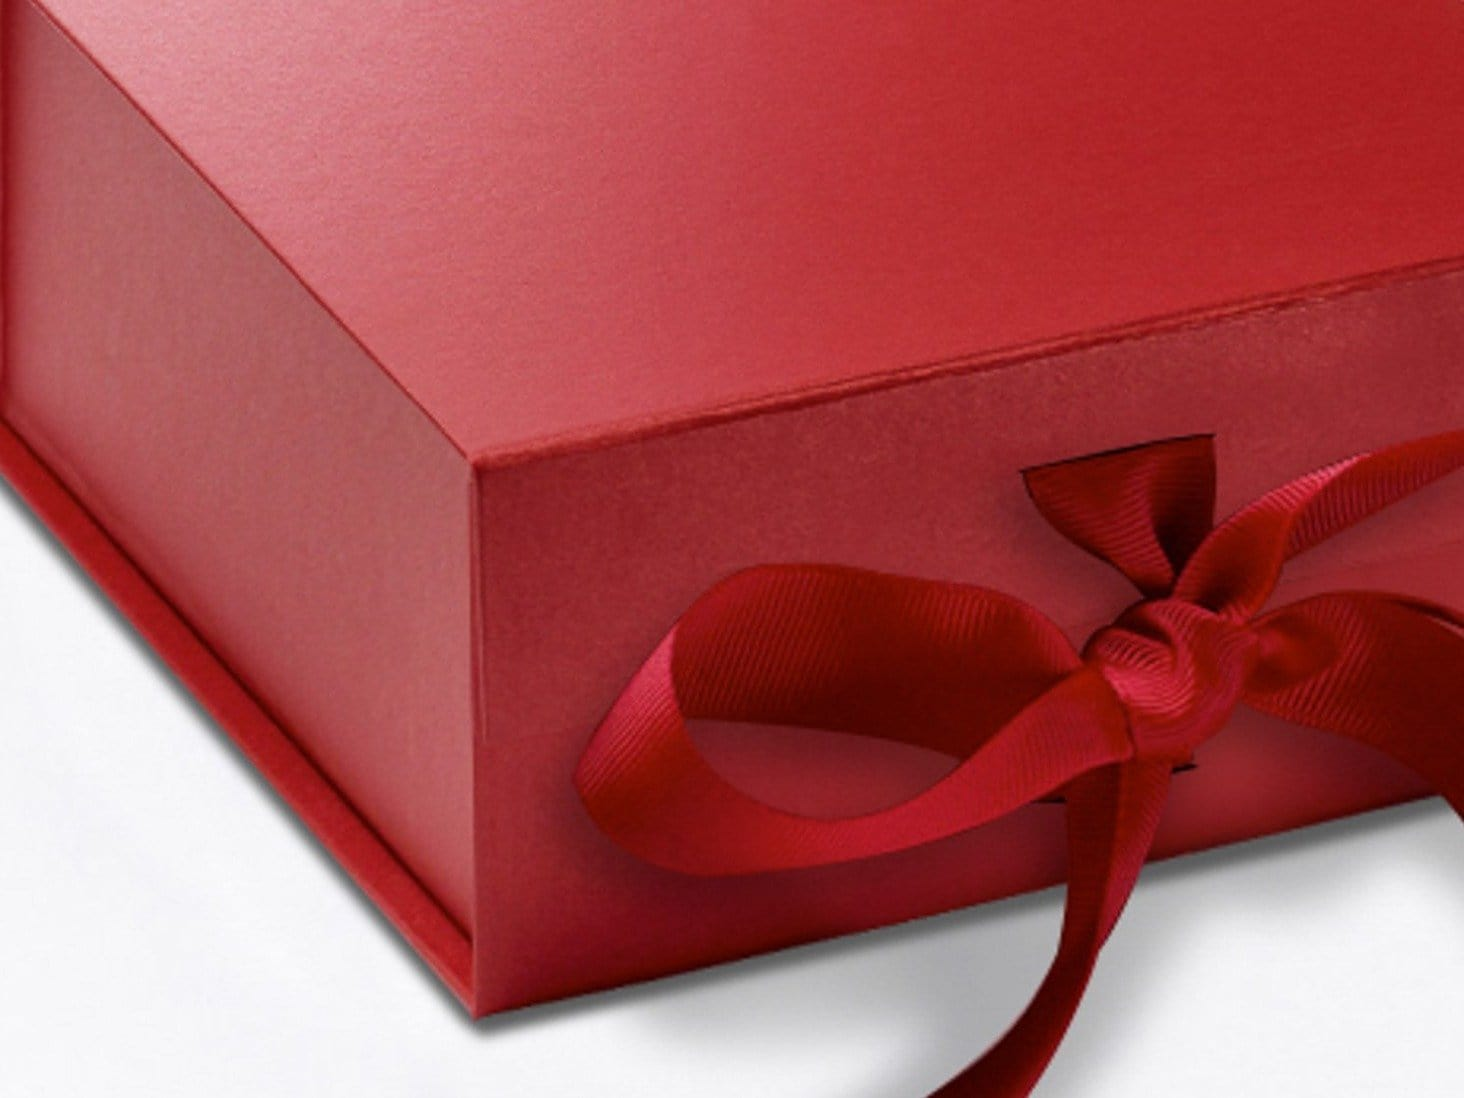 Red Small Gift Boxes With Magnetic Closure And Fixed